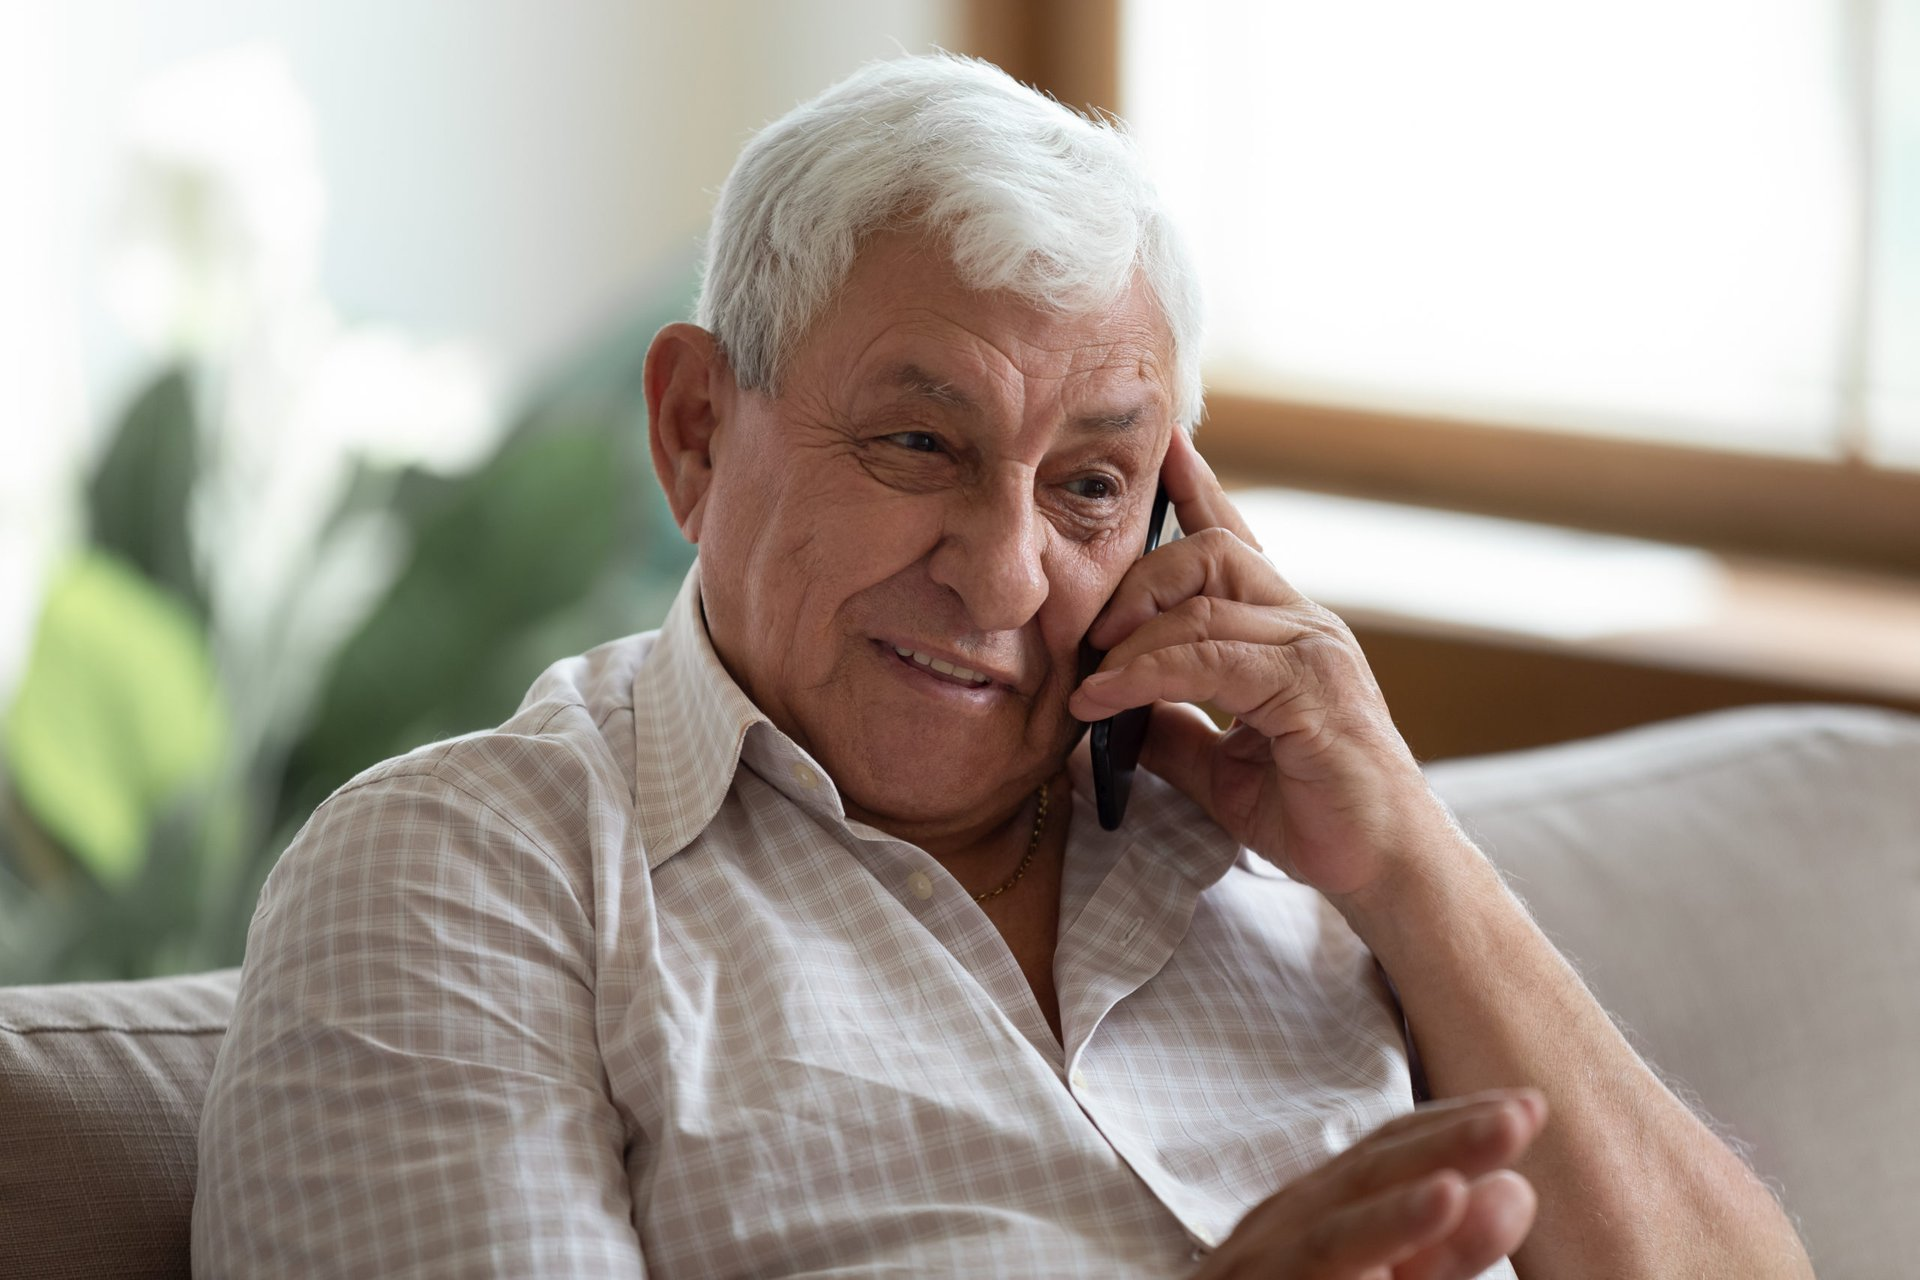 Senior happily talking on smartphone or cellphone